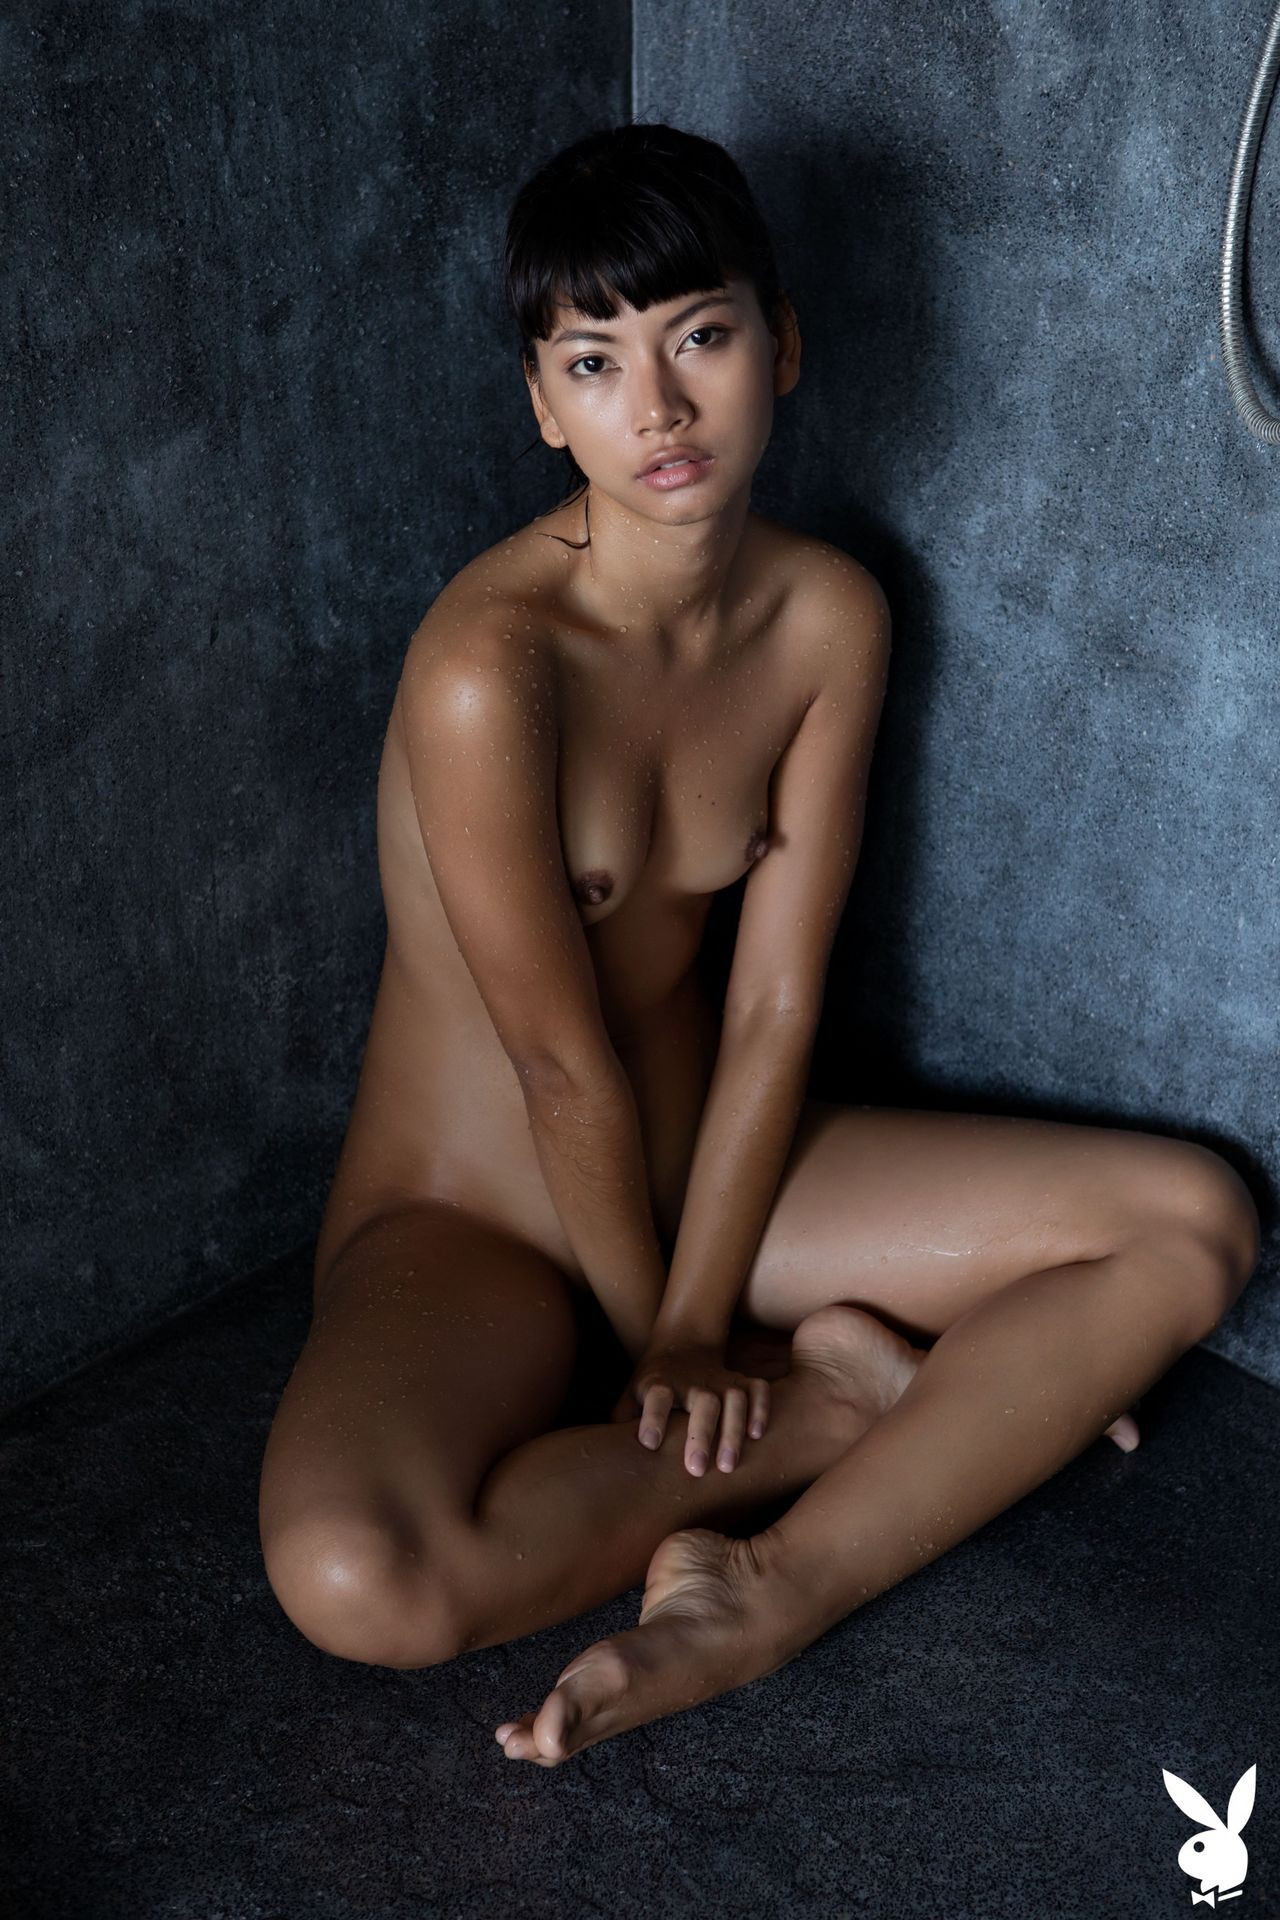 Cara Pin Nude Soft Shower thefappening.nu 8